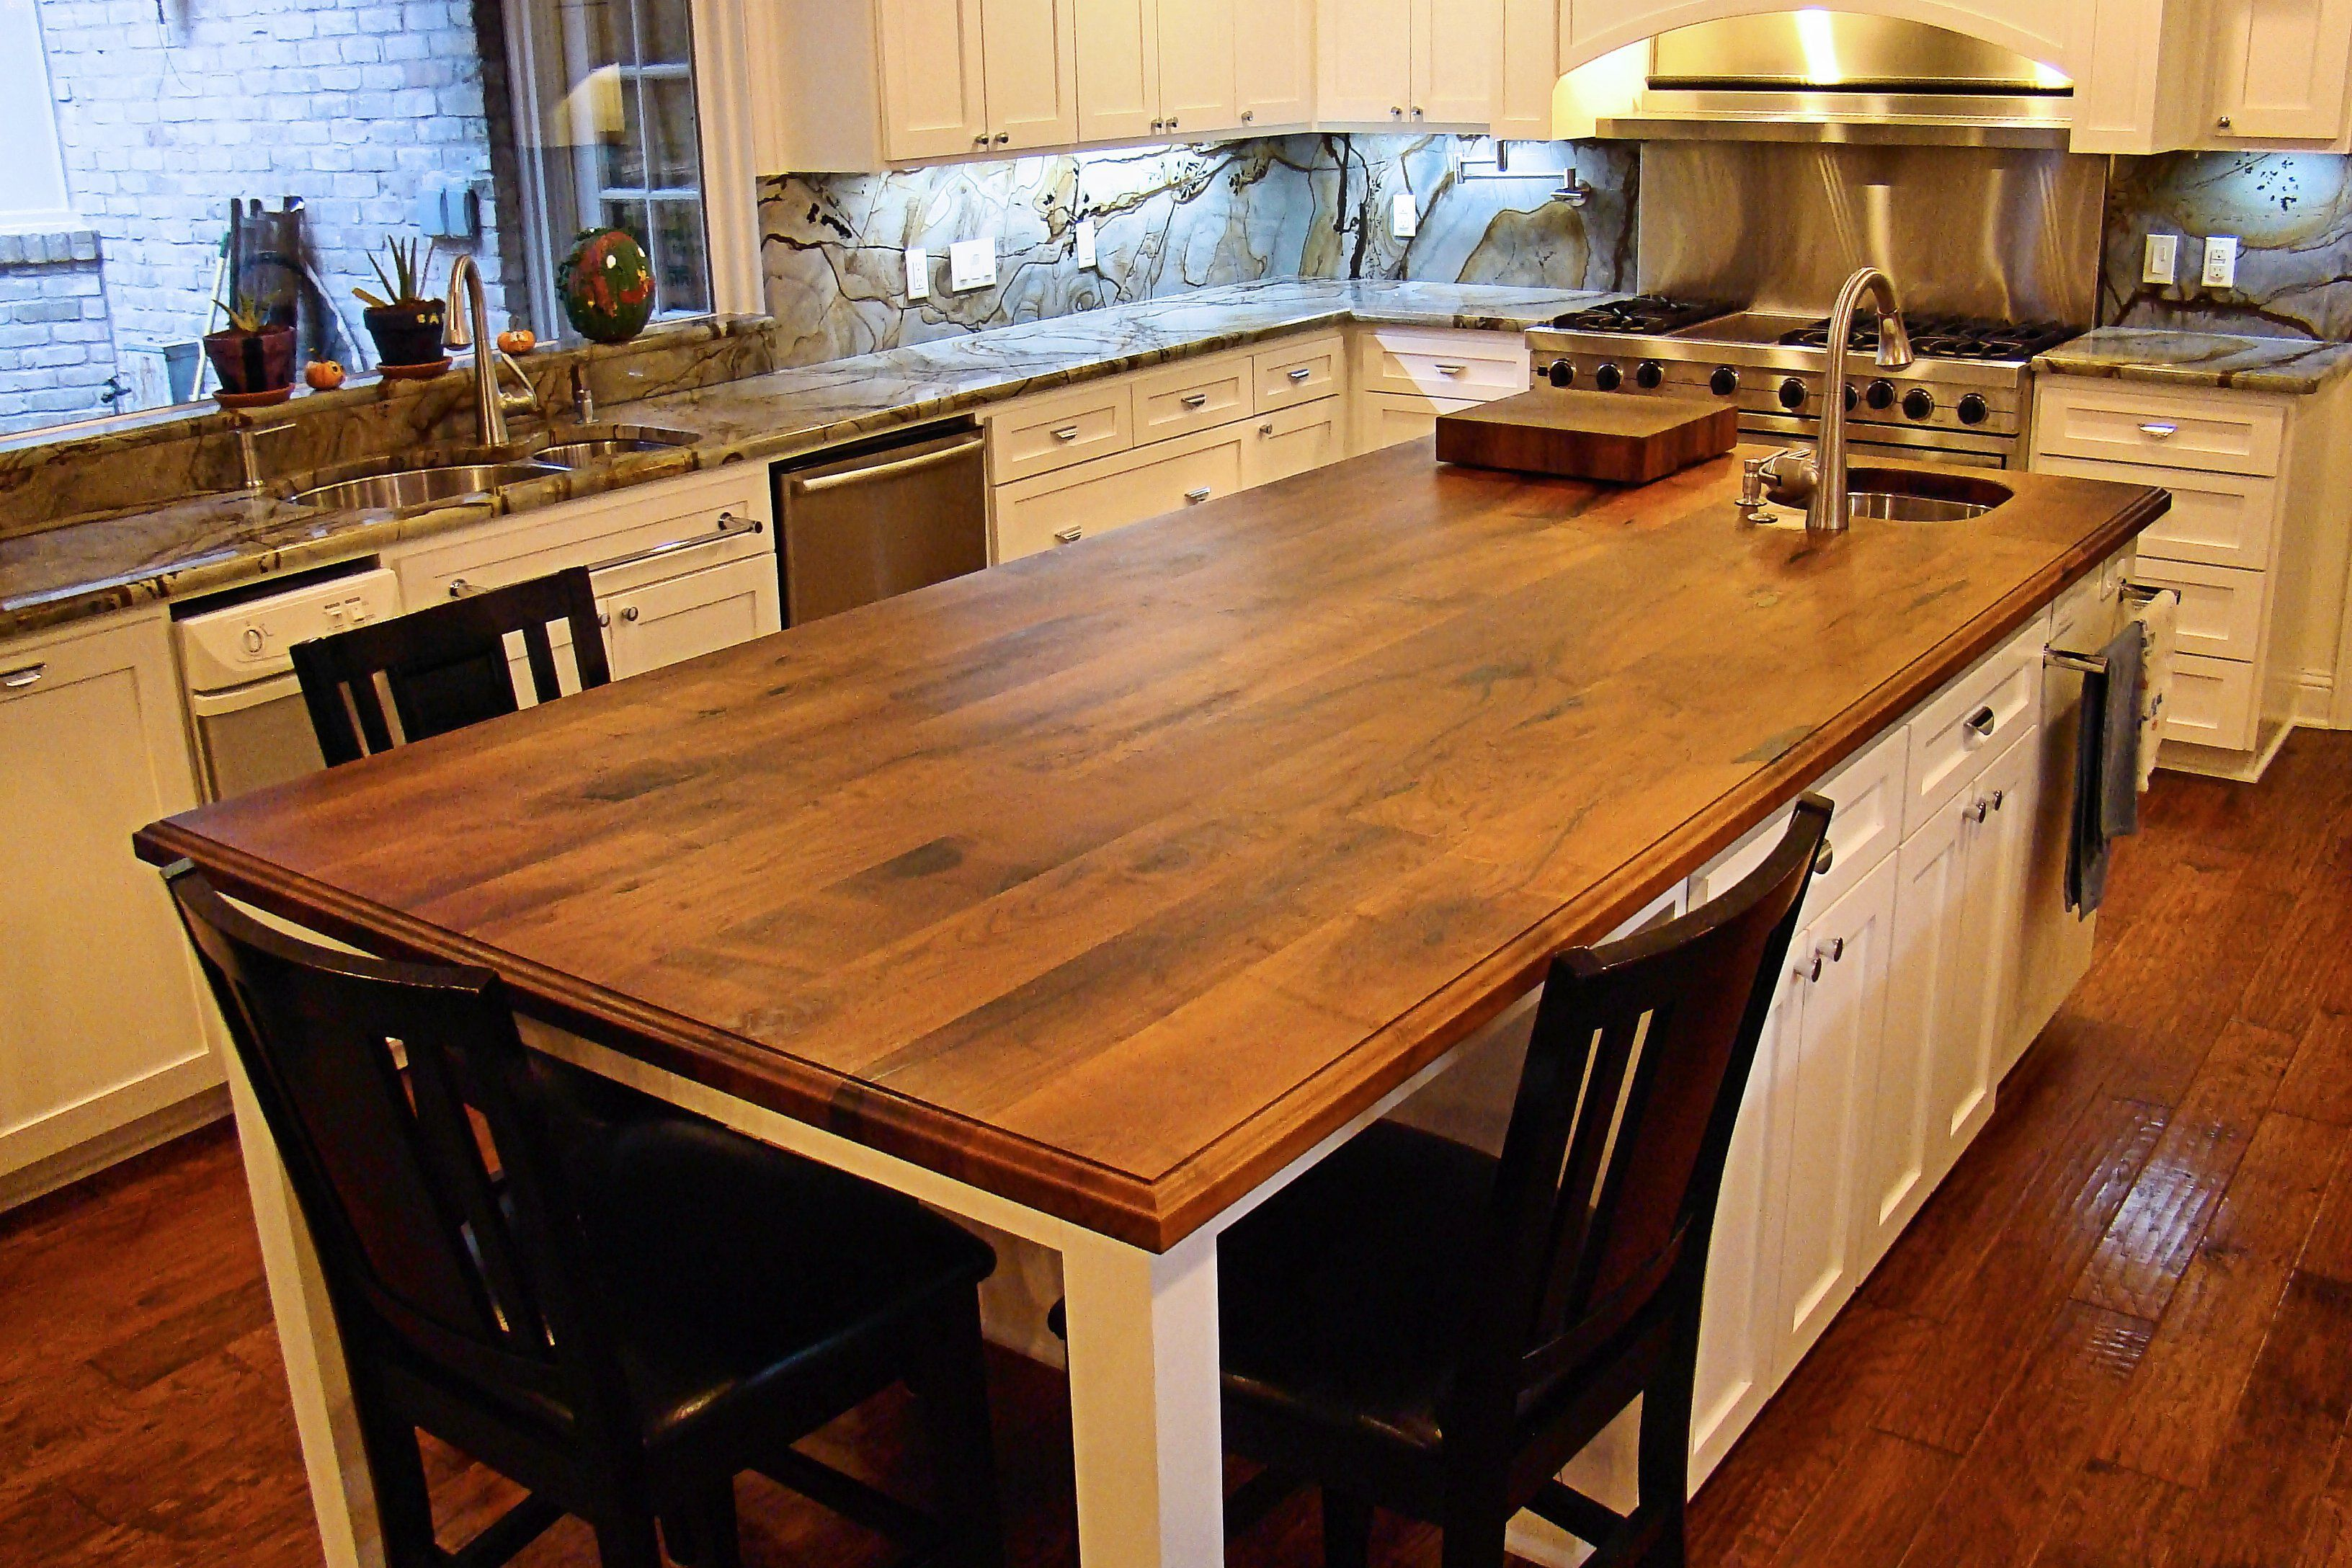 Mesquite Wood Countertop Photo Gallery Countertops Wood Countertops Mesquite Wood